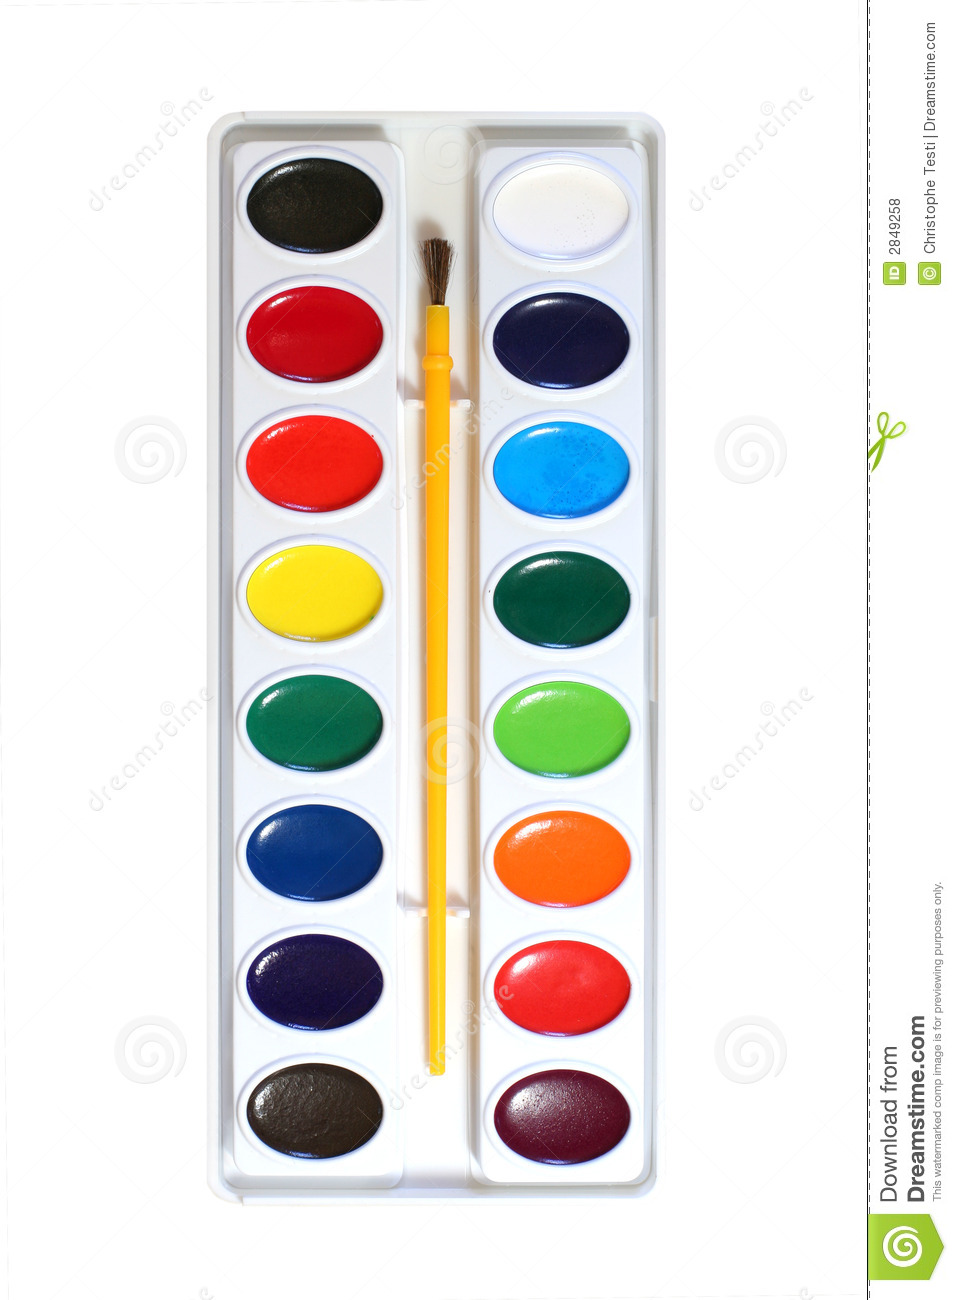 Water color clipart.